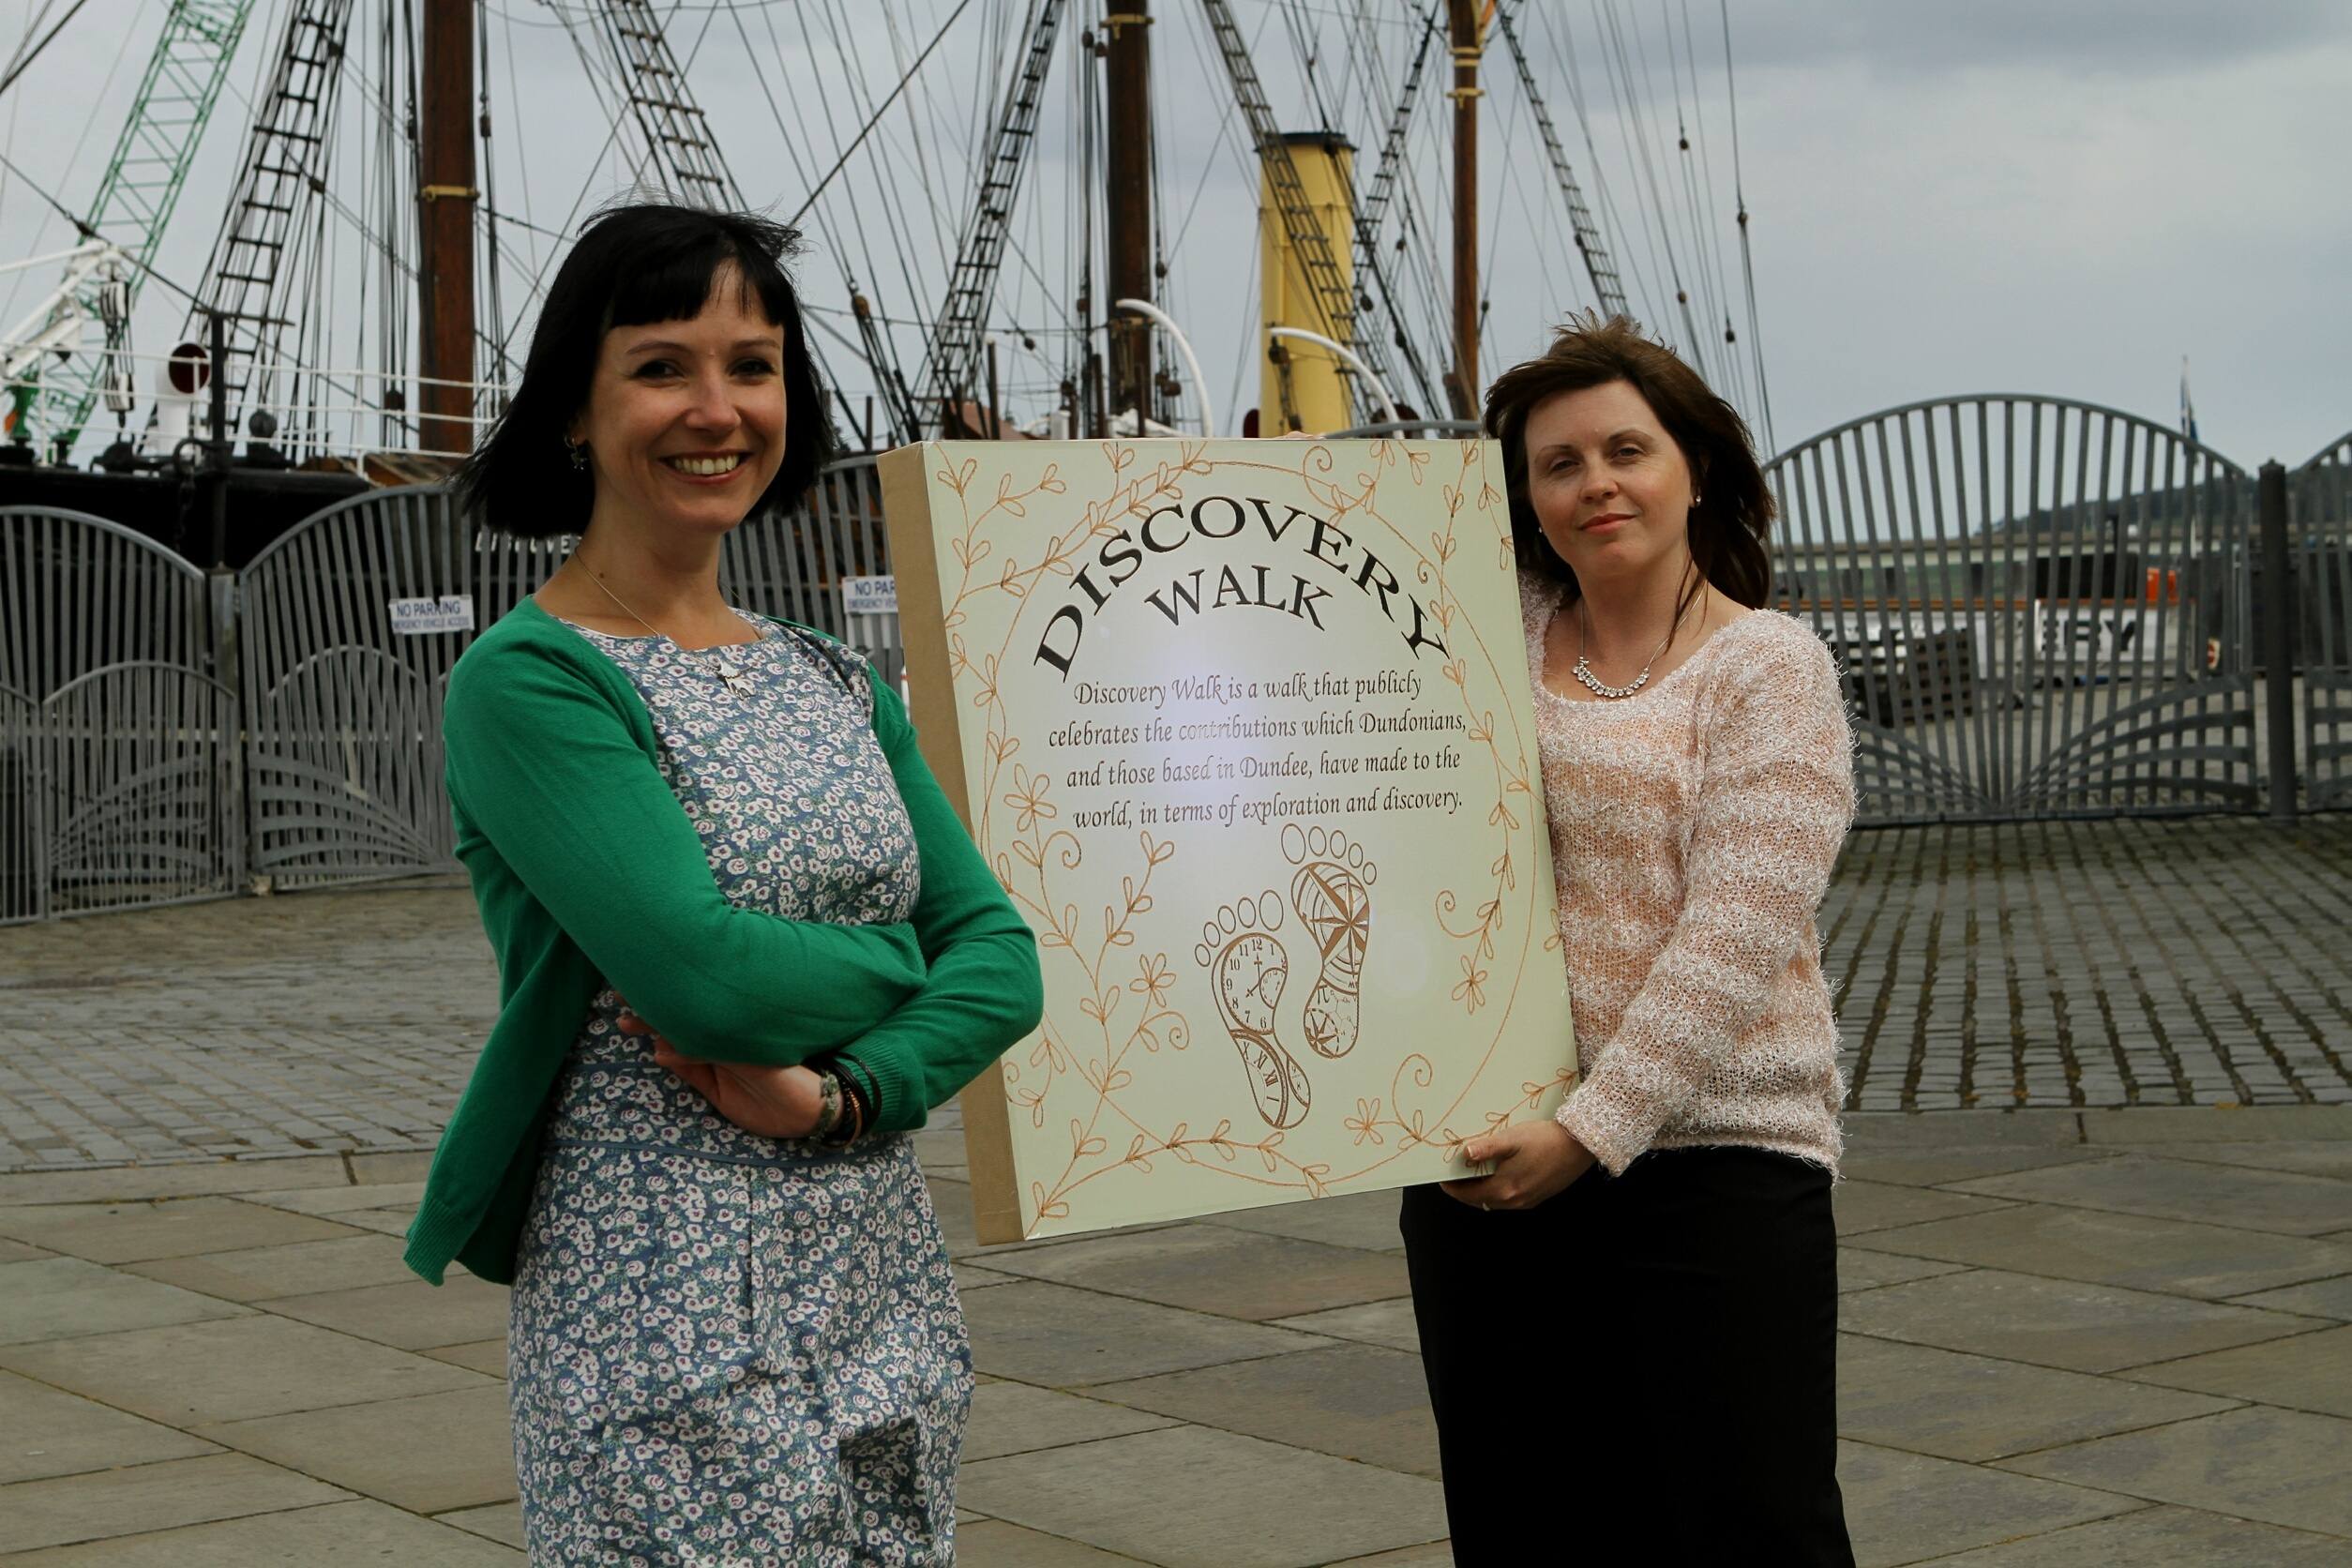 Suzanne Scott and Kelly Marr, brainchild of the Discovery Walk project at the launch in April.